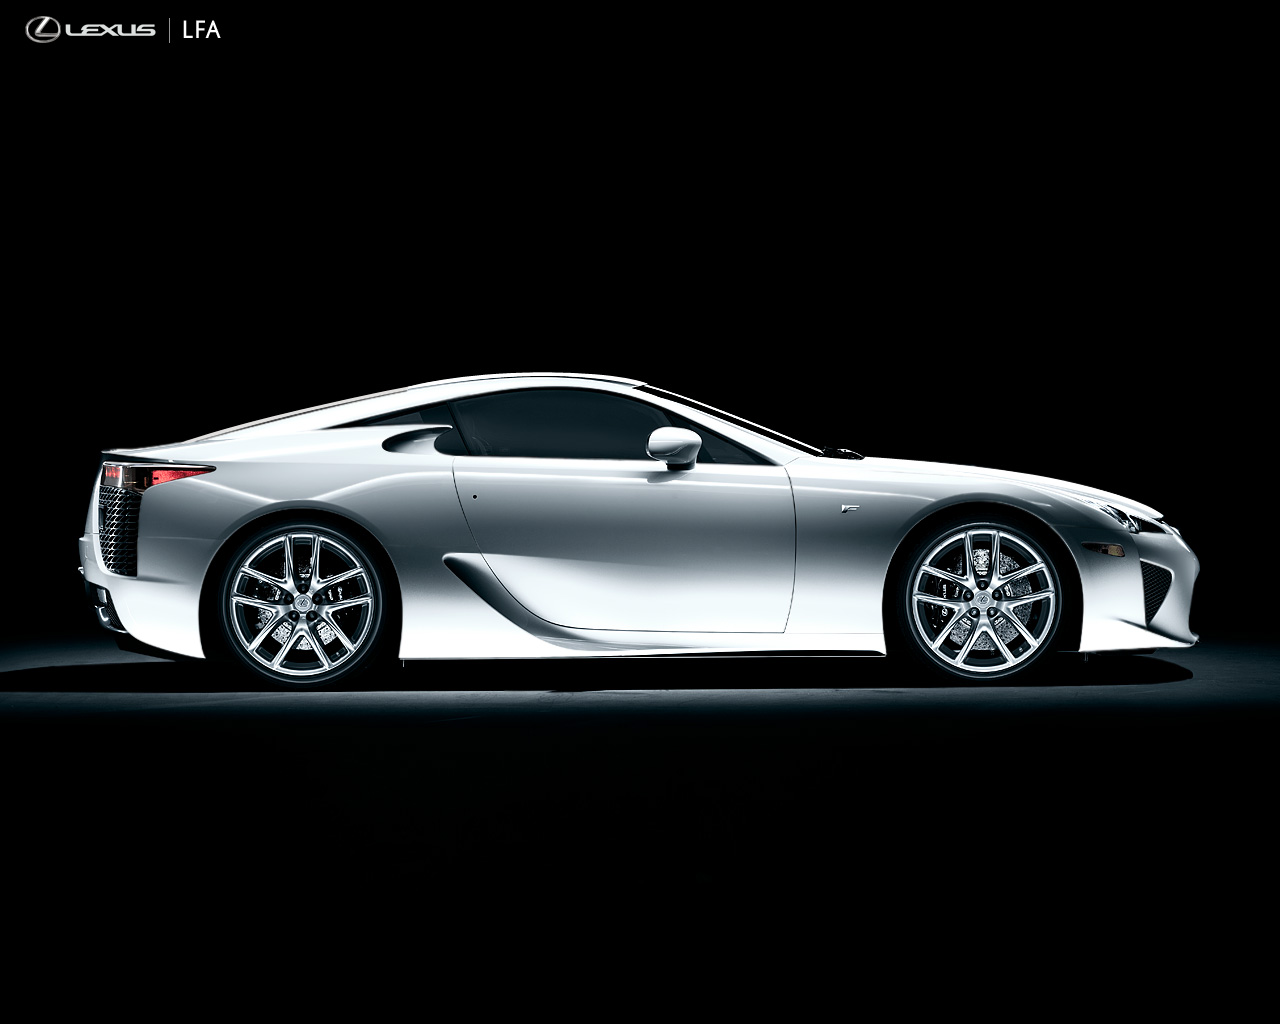 wallpapers lexus lfa - photo #6